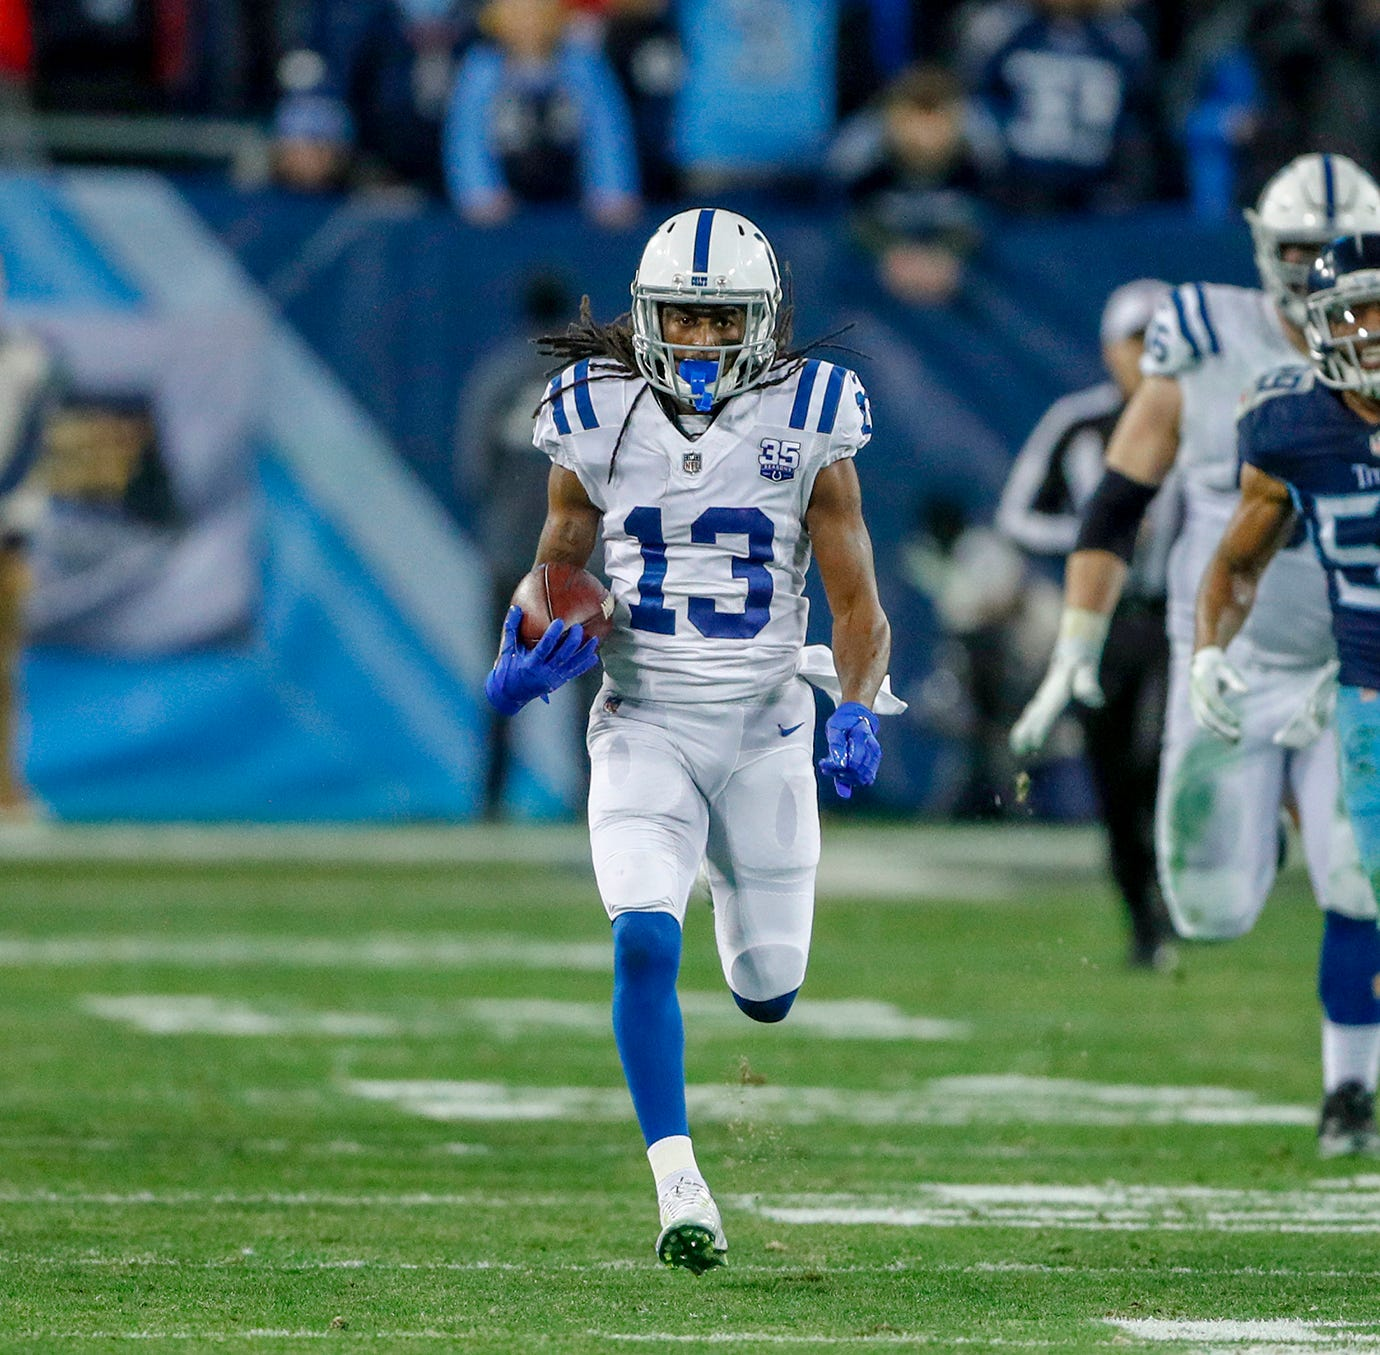 TY Hilton on Colts' offense: 'It's gonna be scary'